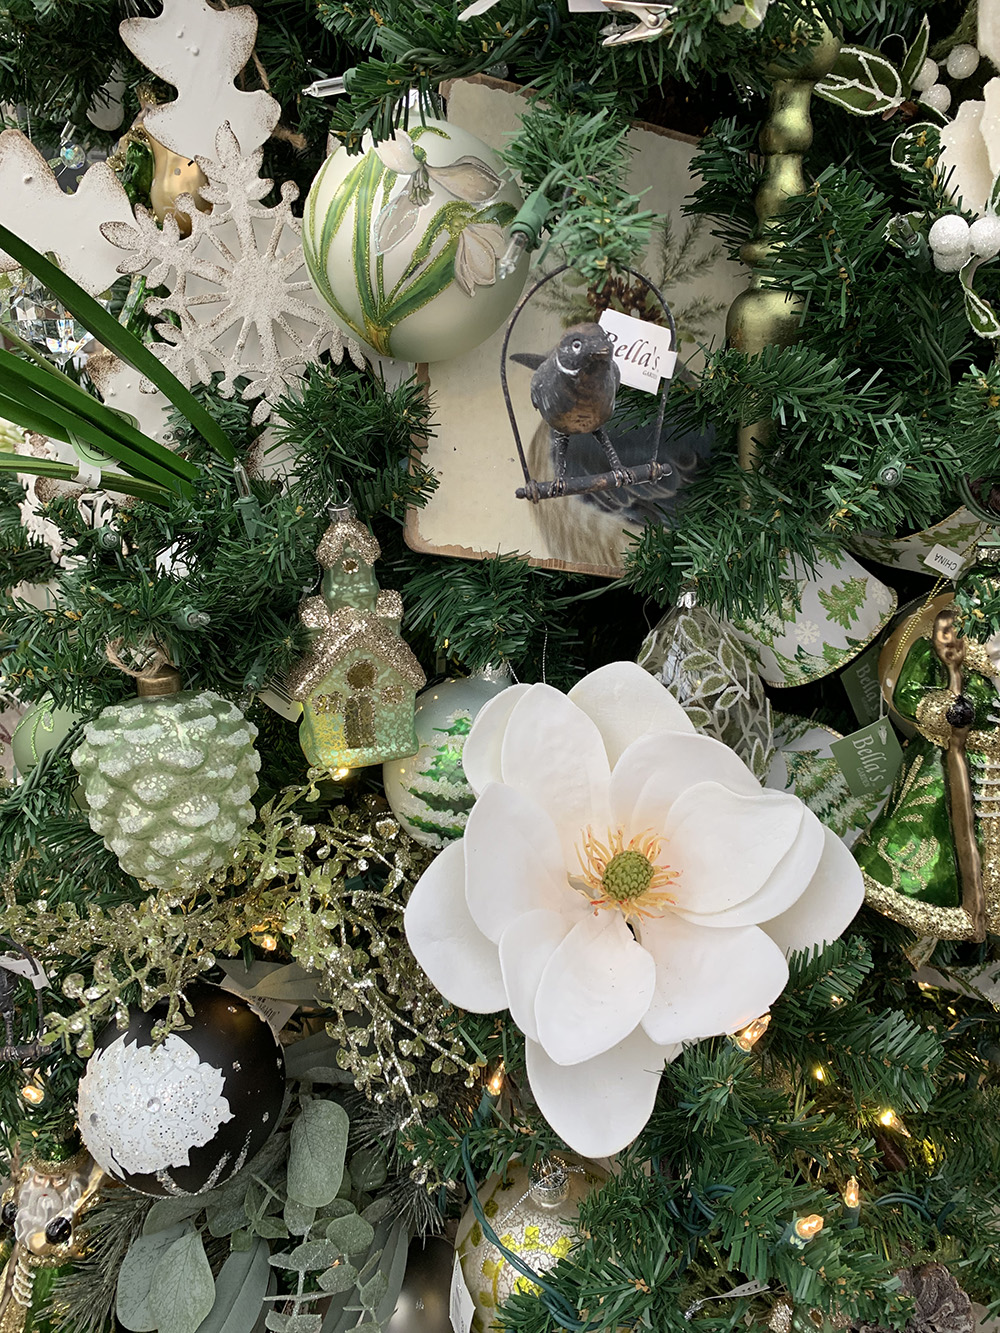 Wreaths, Bows, & More